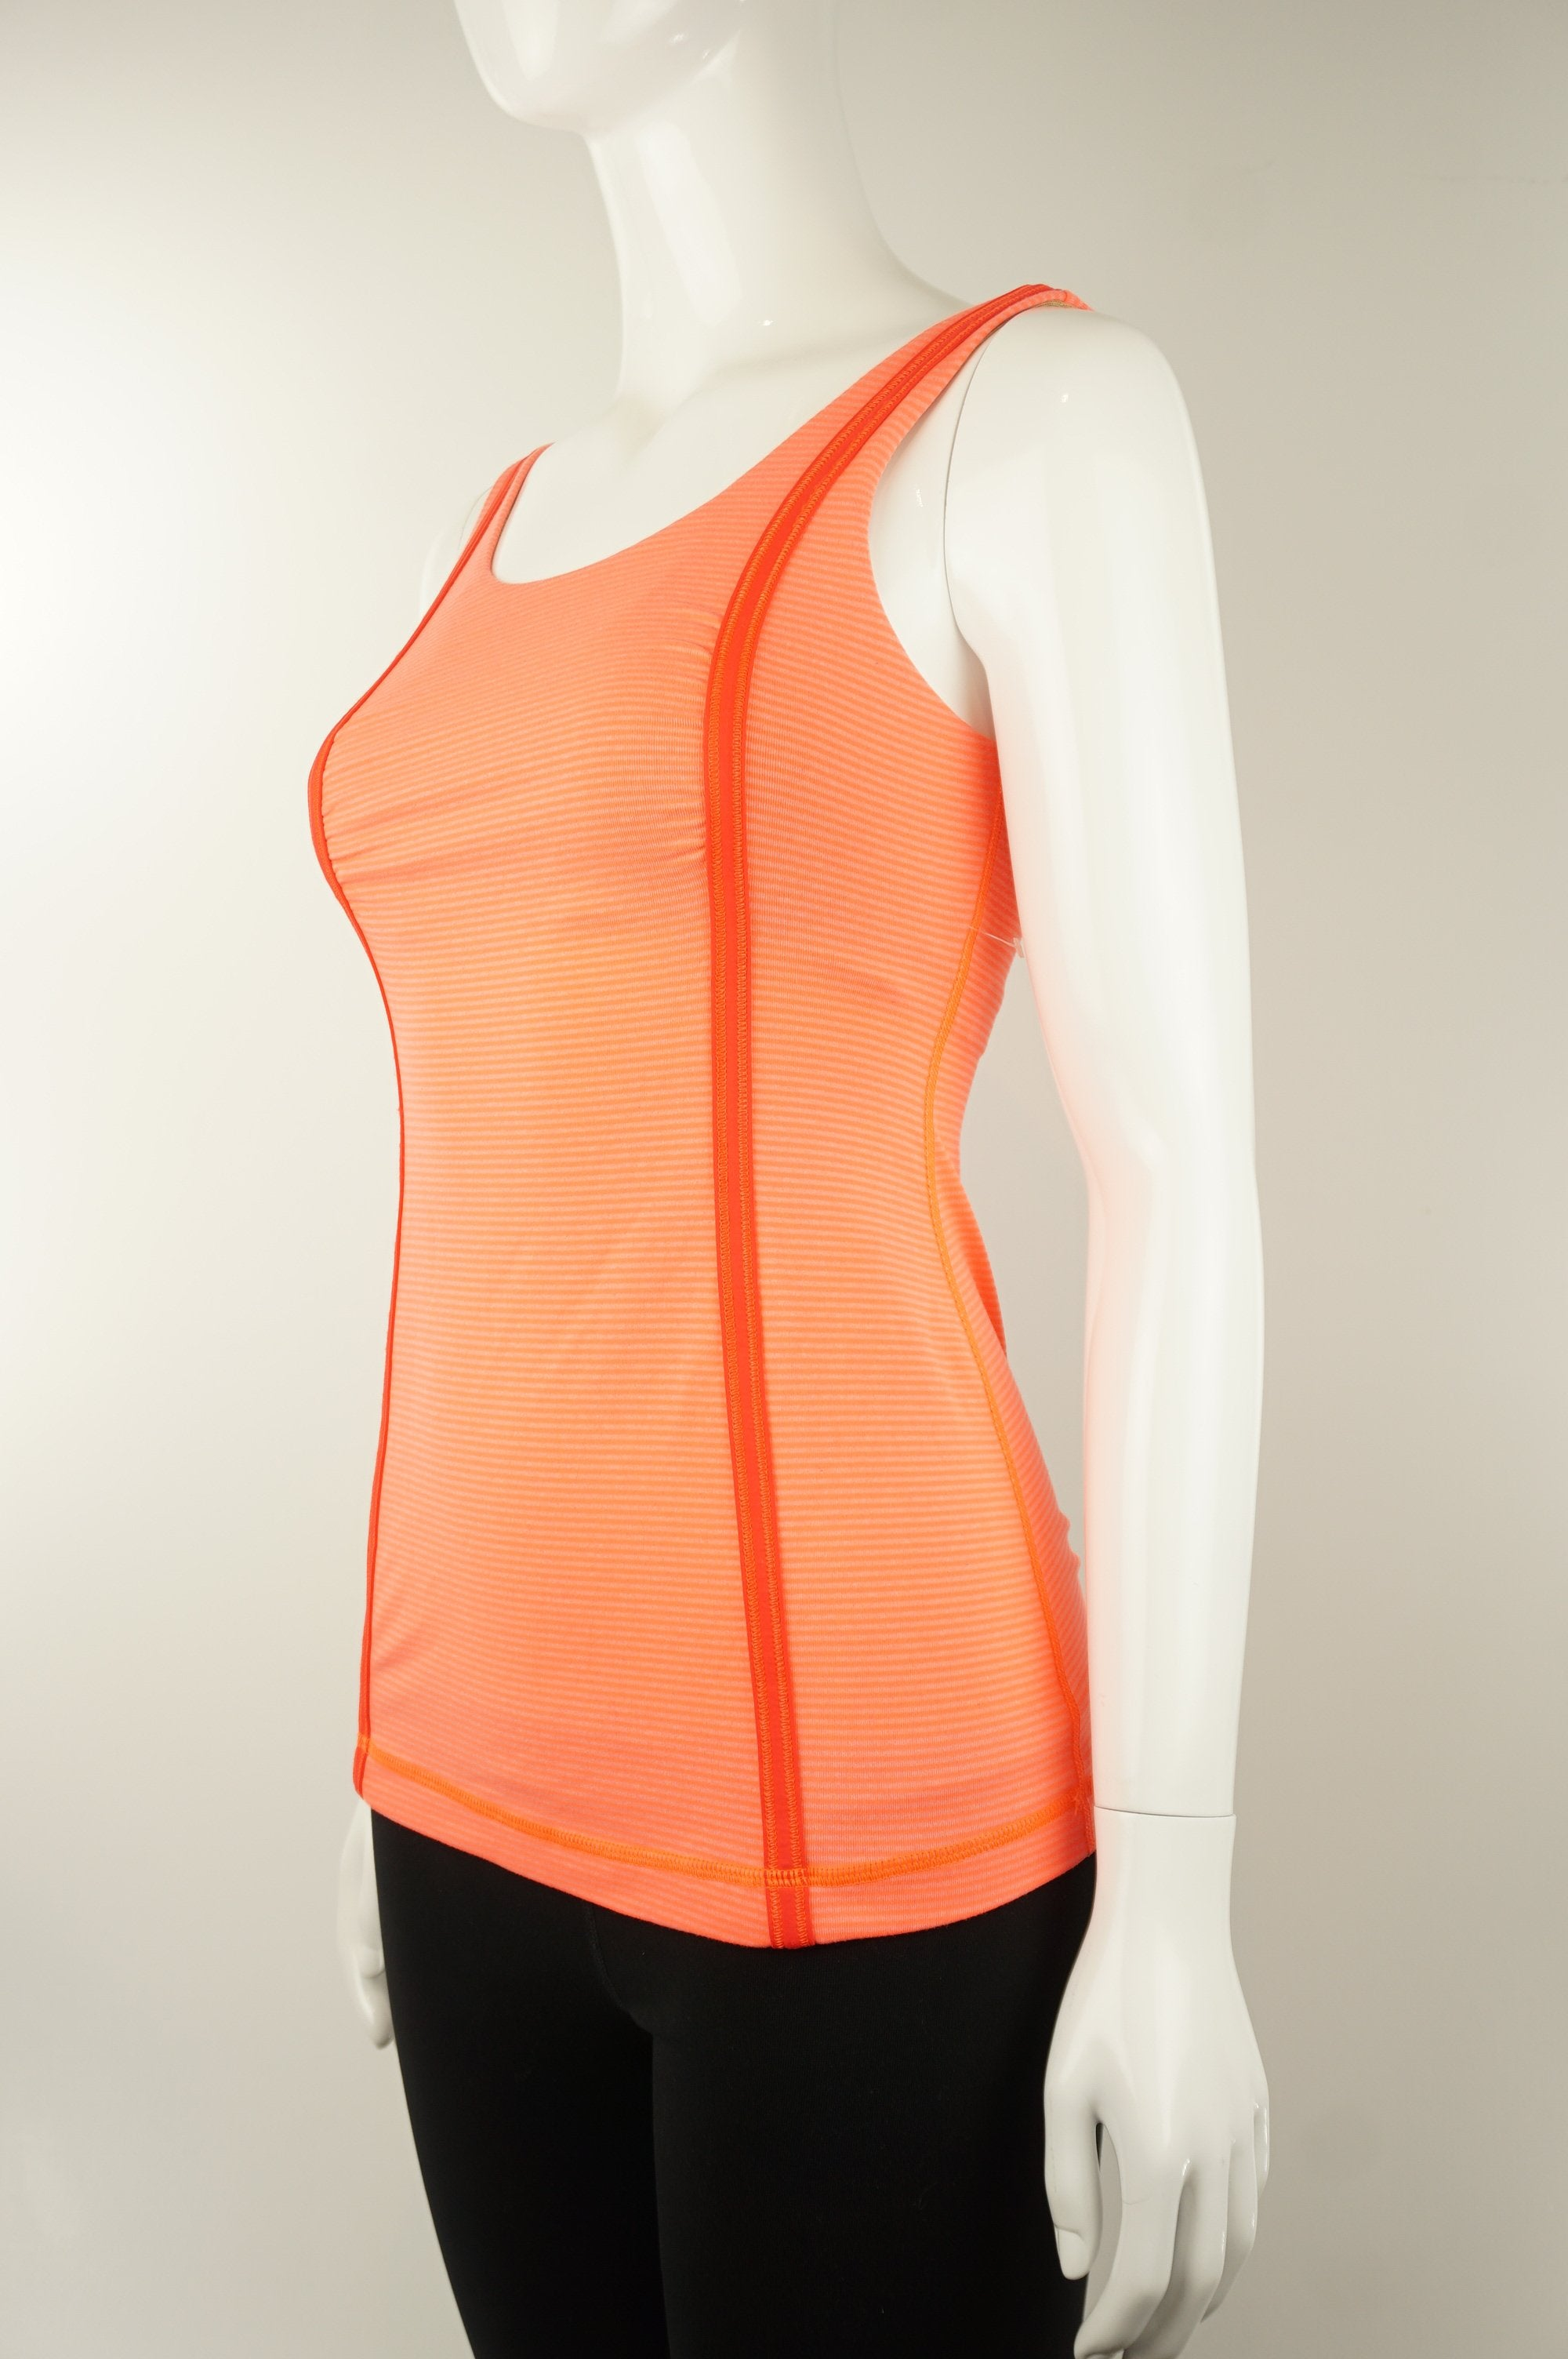 Lululemon Athletic Top, Yoga top/Athletic top/Vancouver street wear. Lululemon size 4. https://info.lululemon.com/help/size-chart, Pink, Nylon, Lycra, and Spandex, Yoga, yoga pants, women's athletic wear, women's work out clothes, women's comfortable pants, fitness, fit